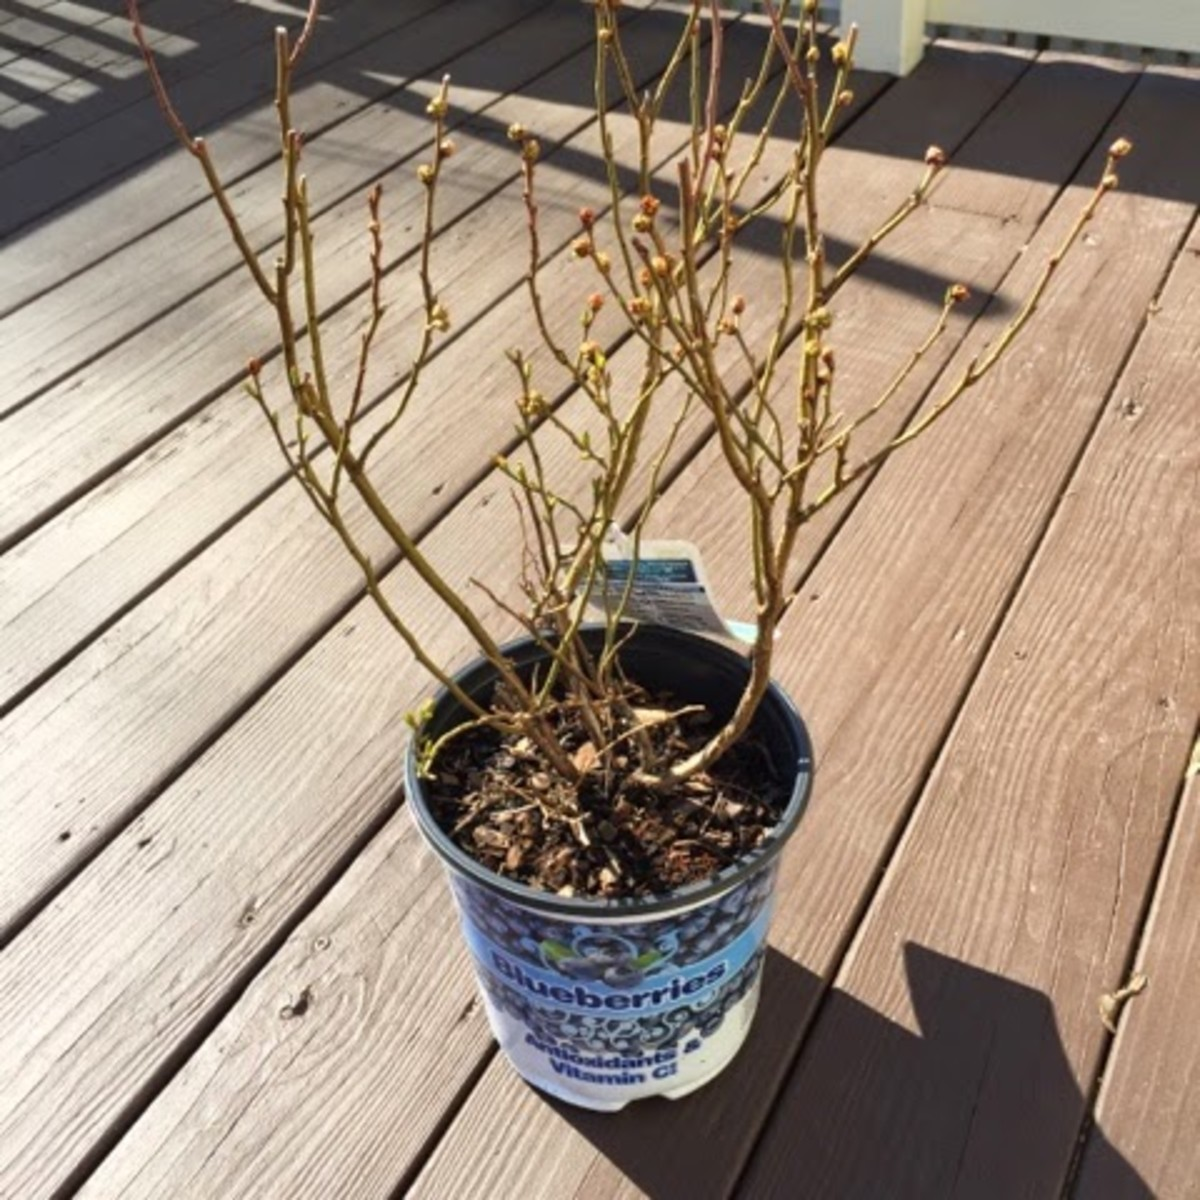 My new Duke Blueberry bush that I bought in the spring of 2015.